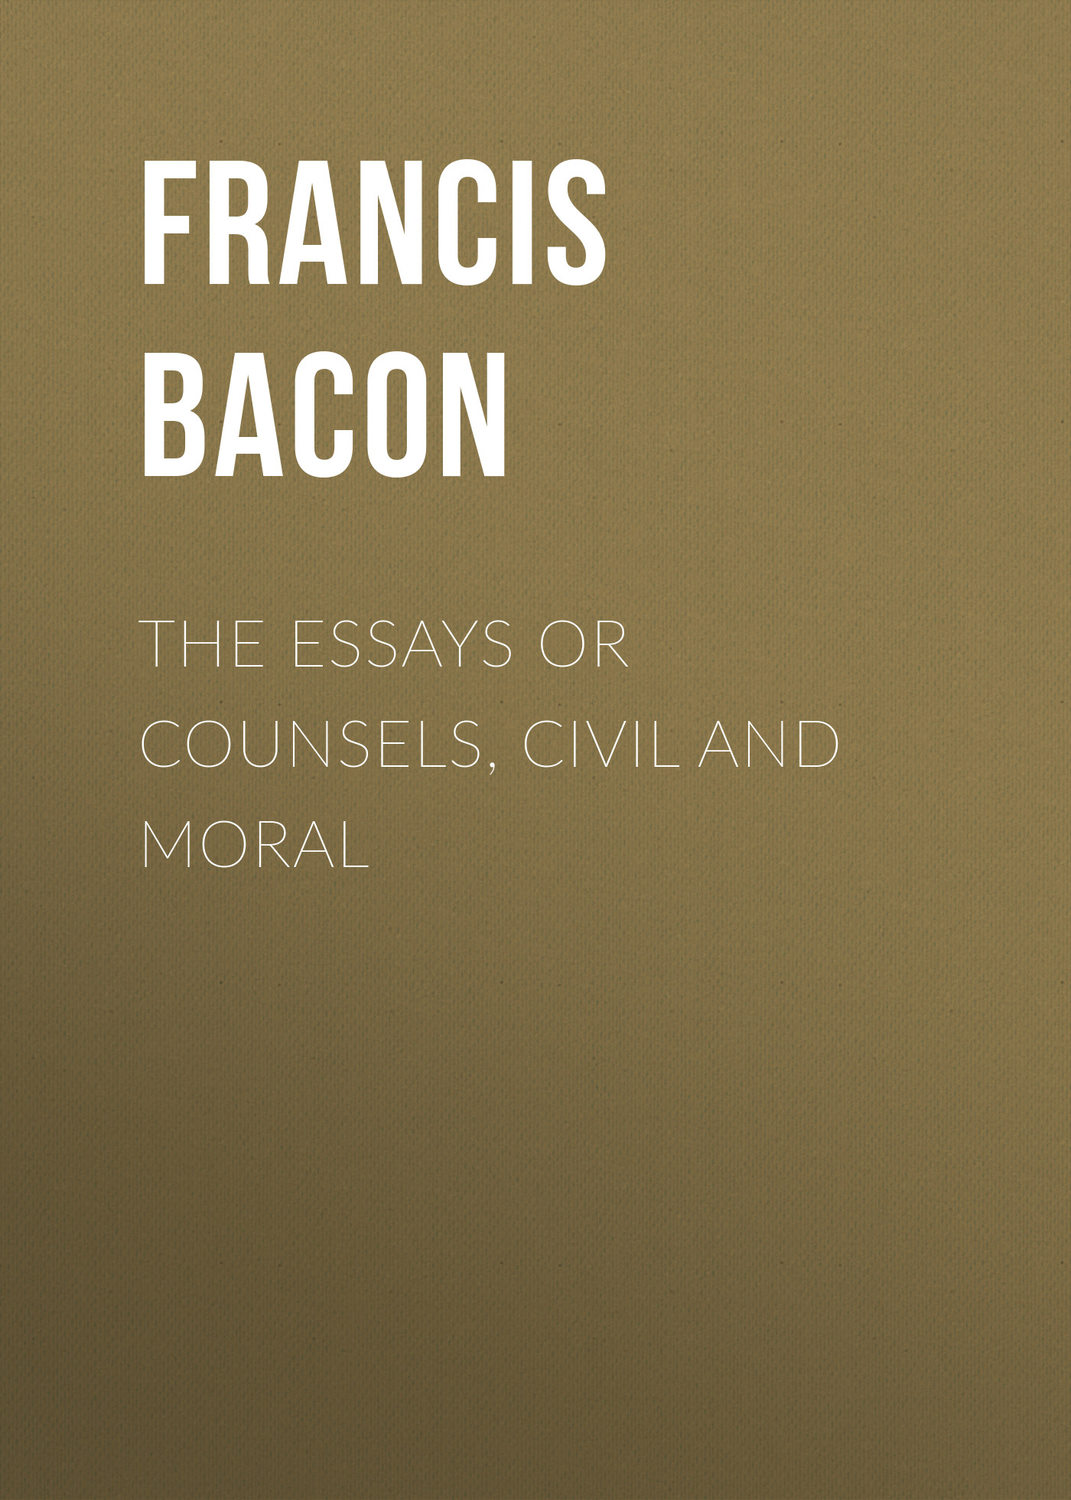 francis bacon essays or counsels I first encountered francis bacon's essays many, many years ago during college my copy was a college library edition, so it did not remain a part of my permanent collection however, some 25+ years later, i purchased the penguin classics edition to reread and reminisce about my school days, and i was not disappointed.